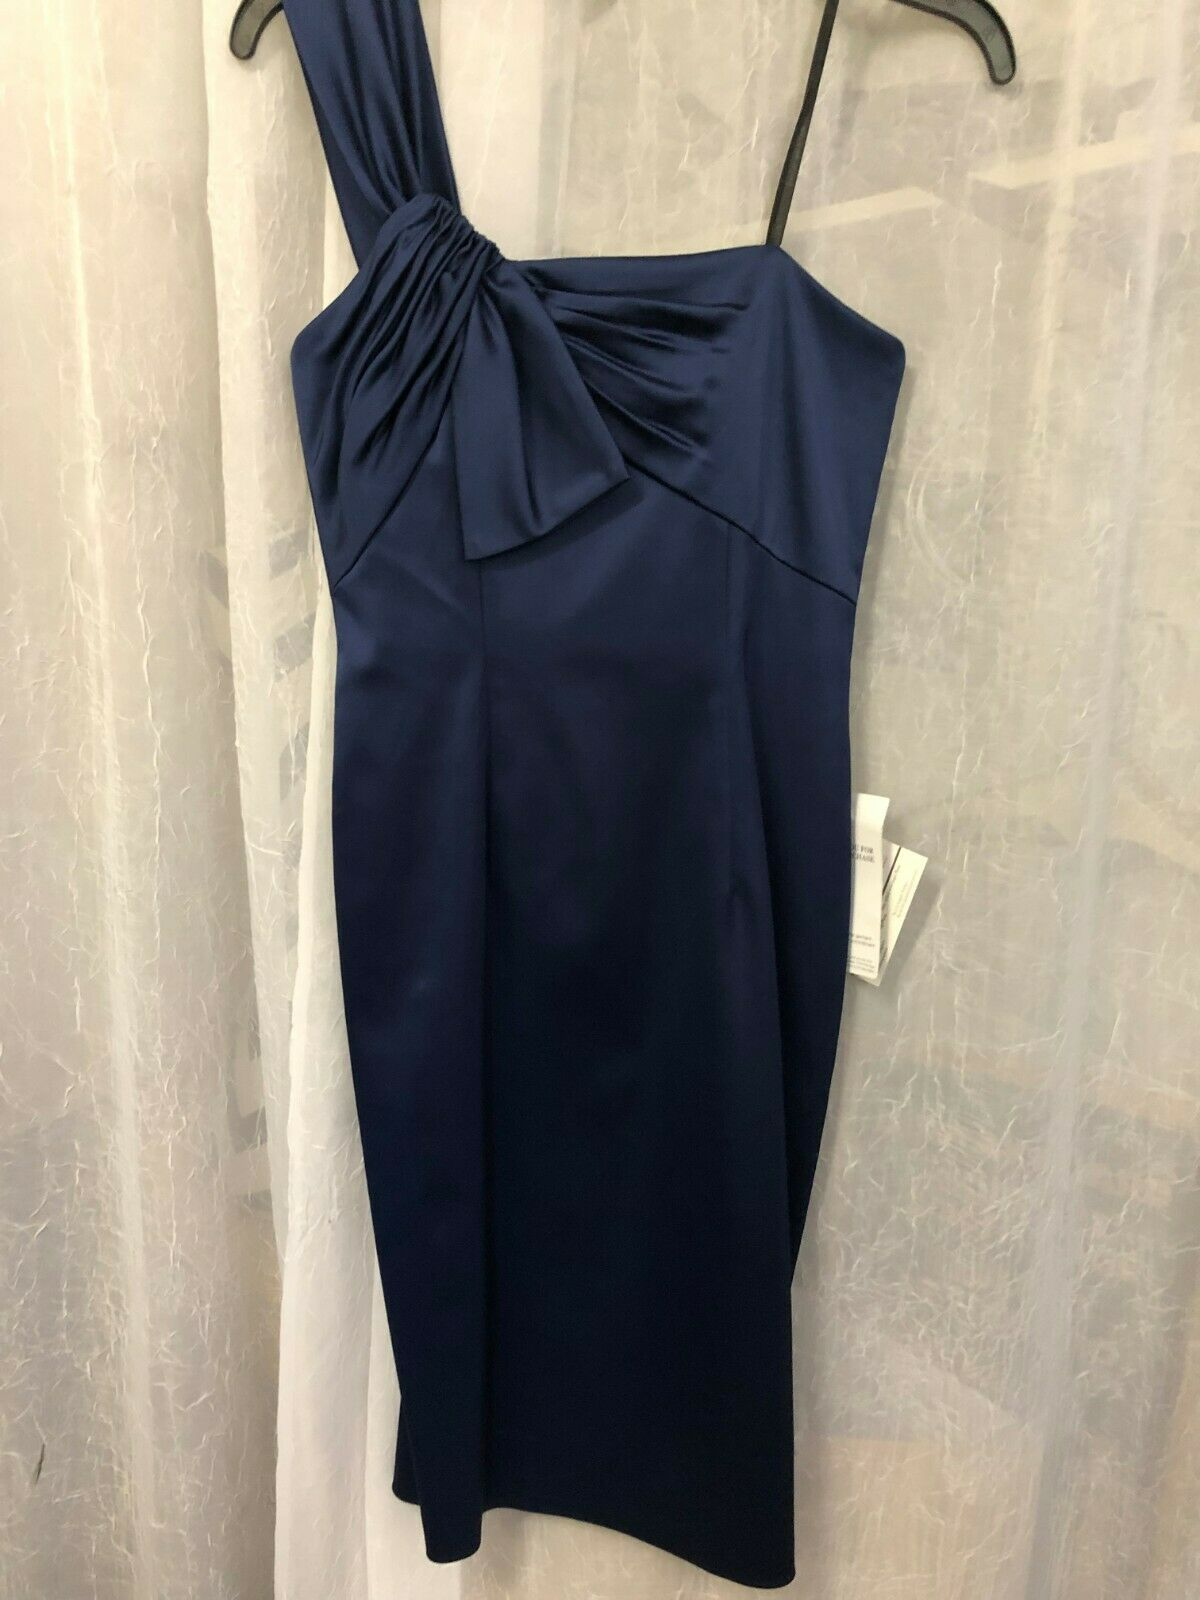 David Meister Women's Navy bluee One Strap Dress Size 2 NWT